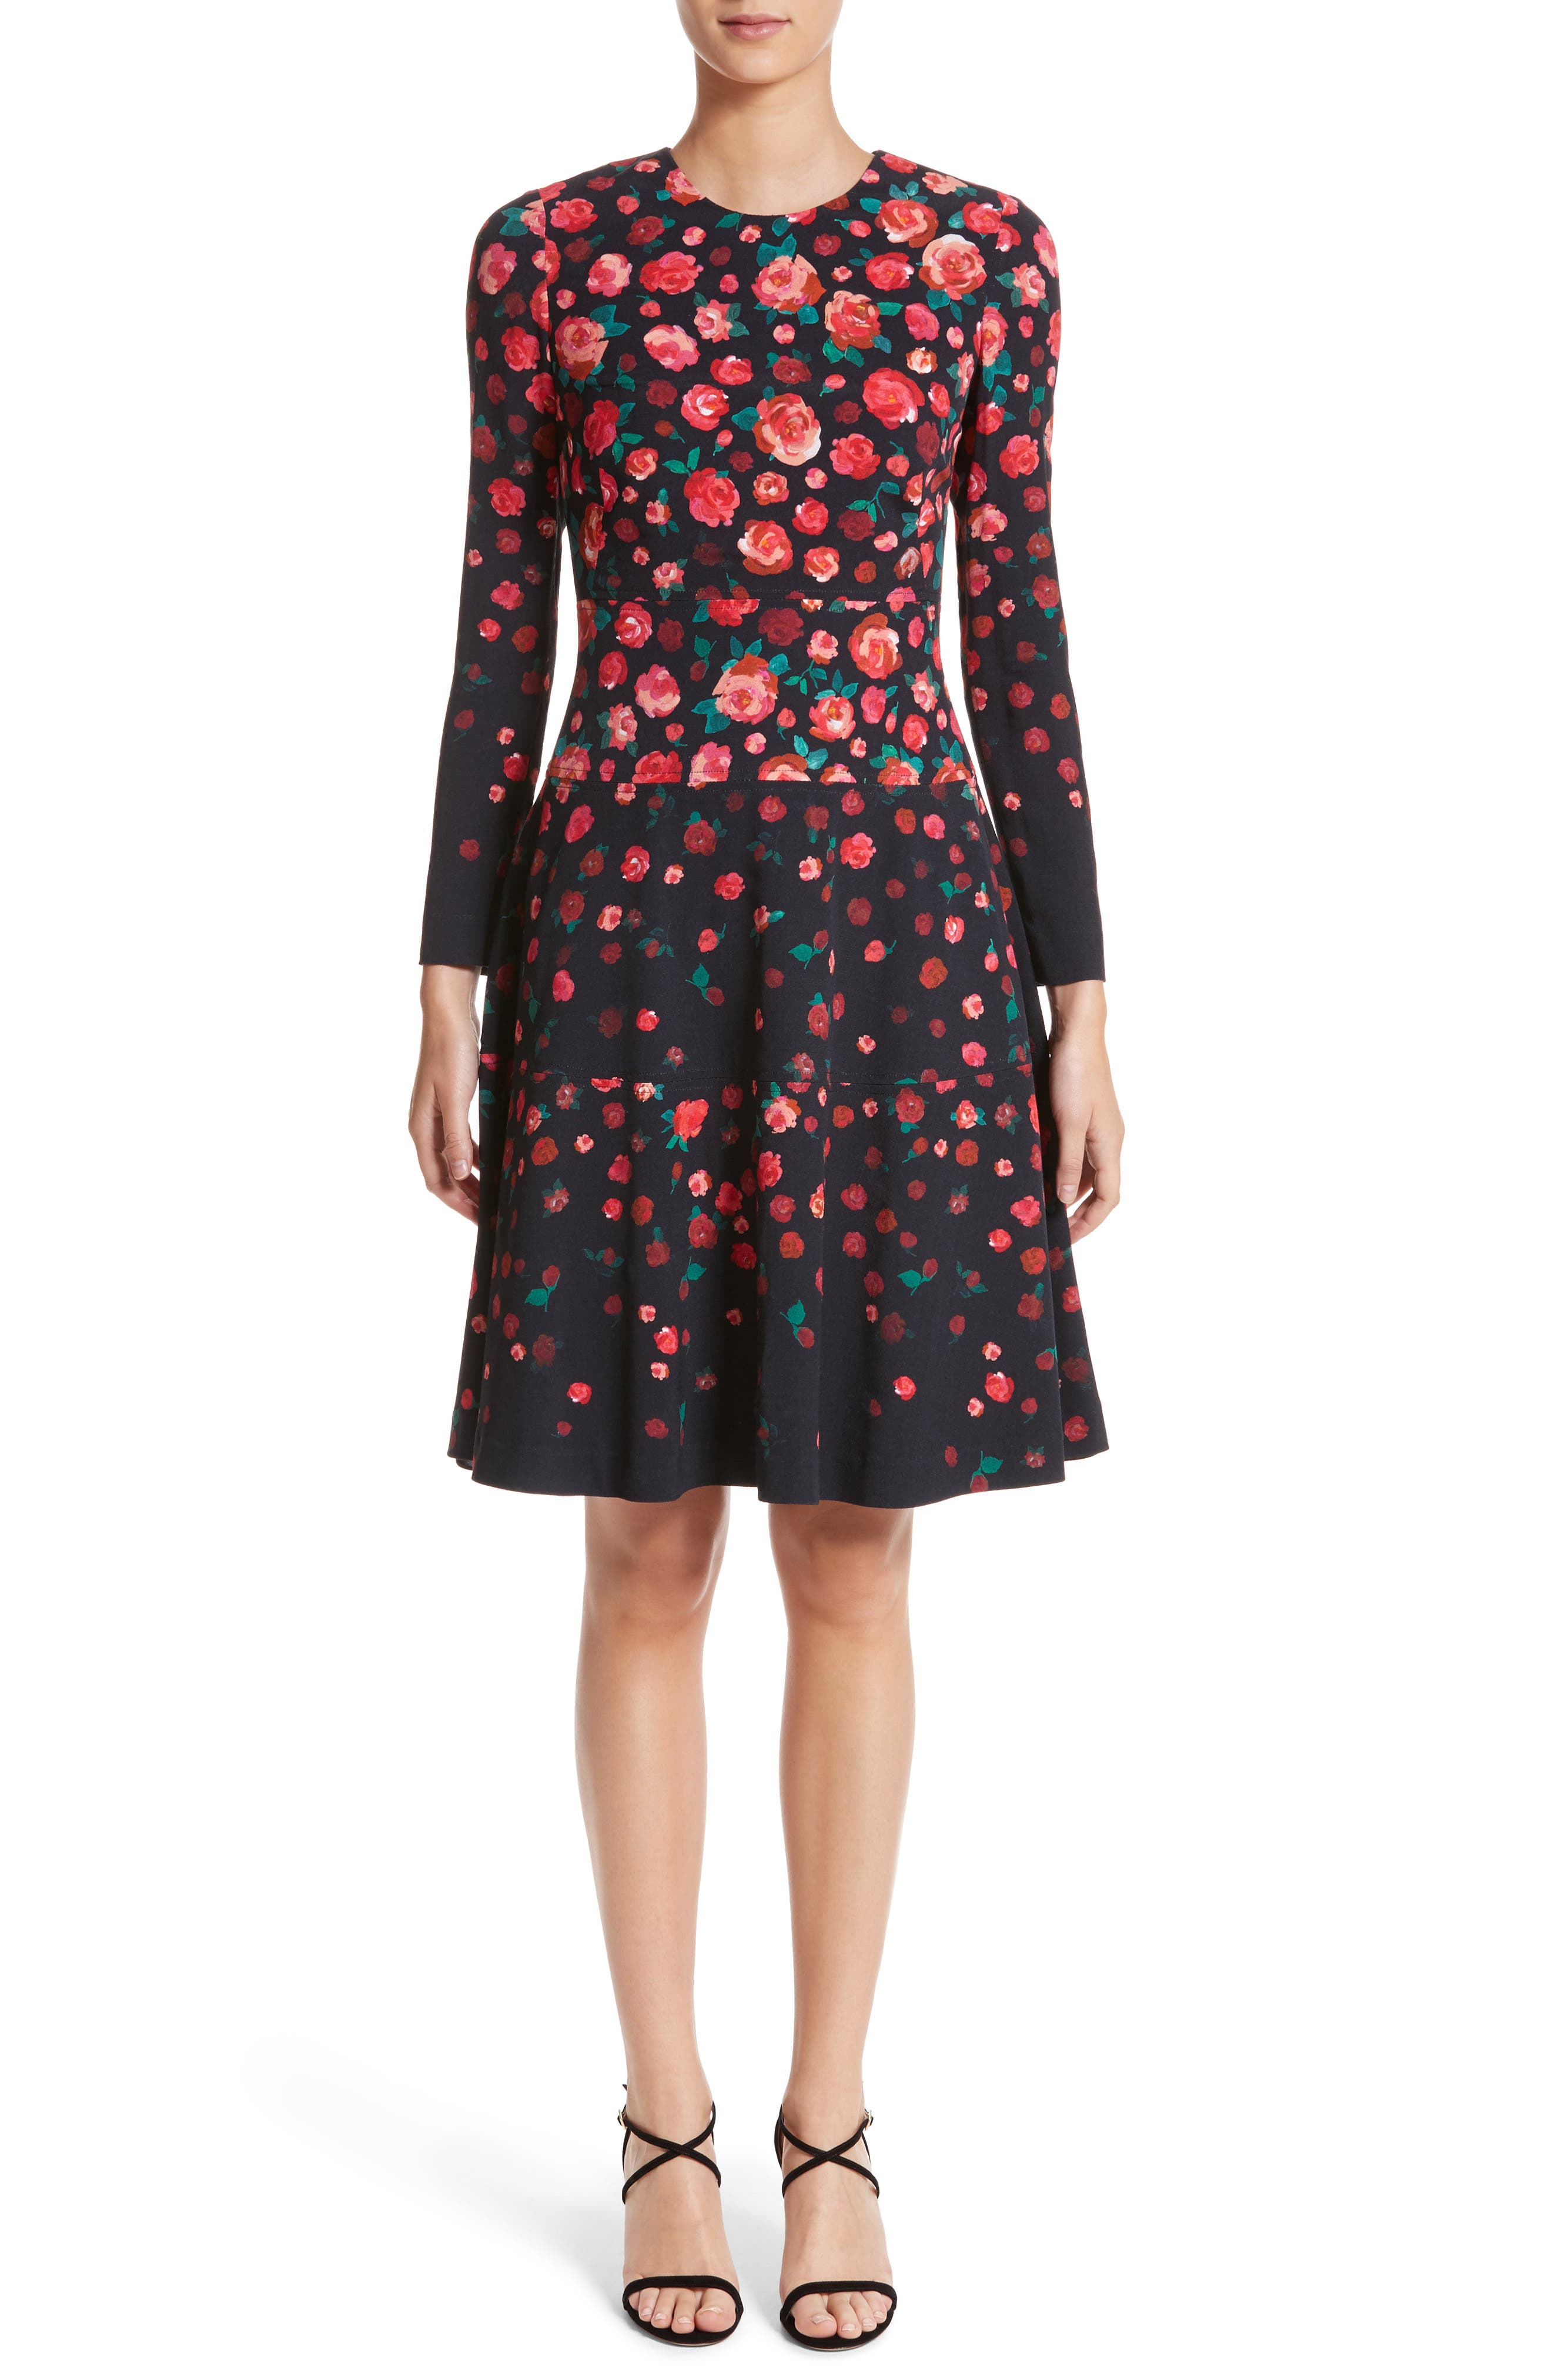 Lela Rose Floral Print Fit & Flare Dress